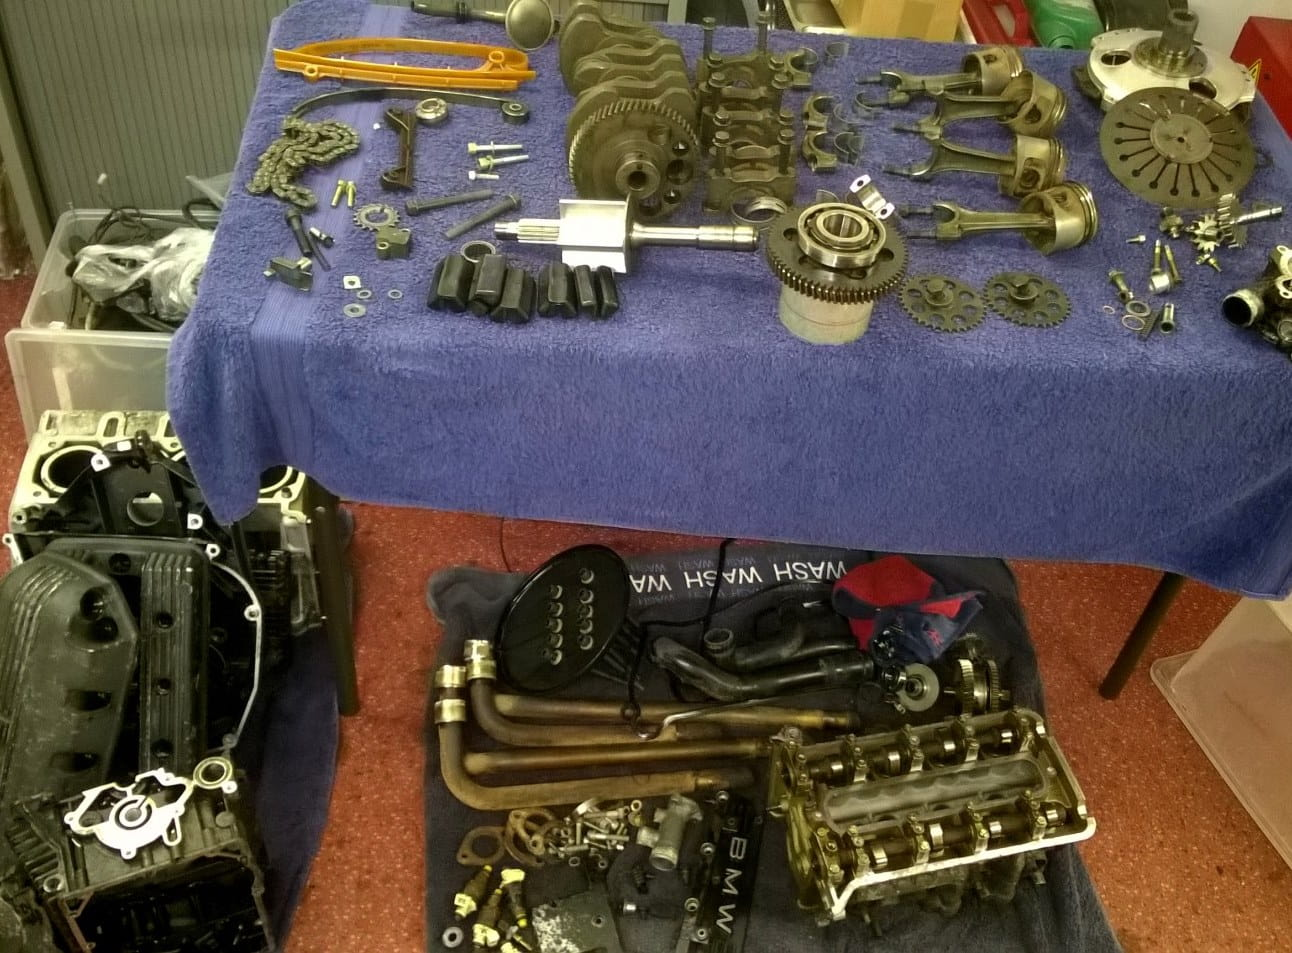 Various engine parts